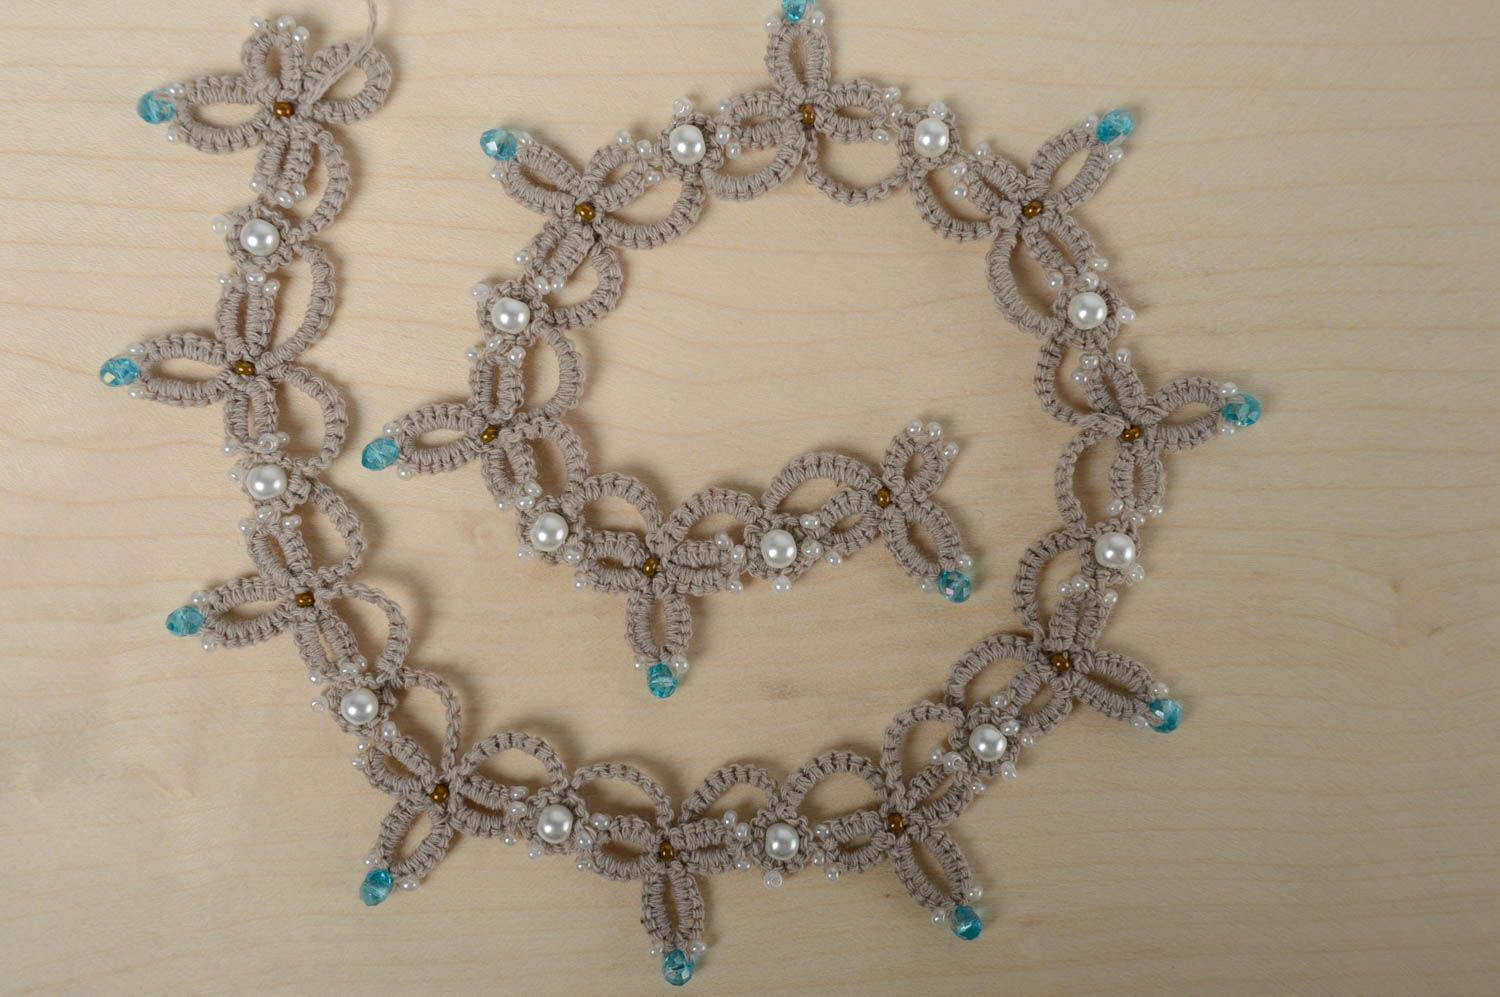 Woven beaded necklace photo 2